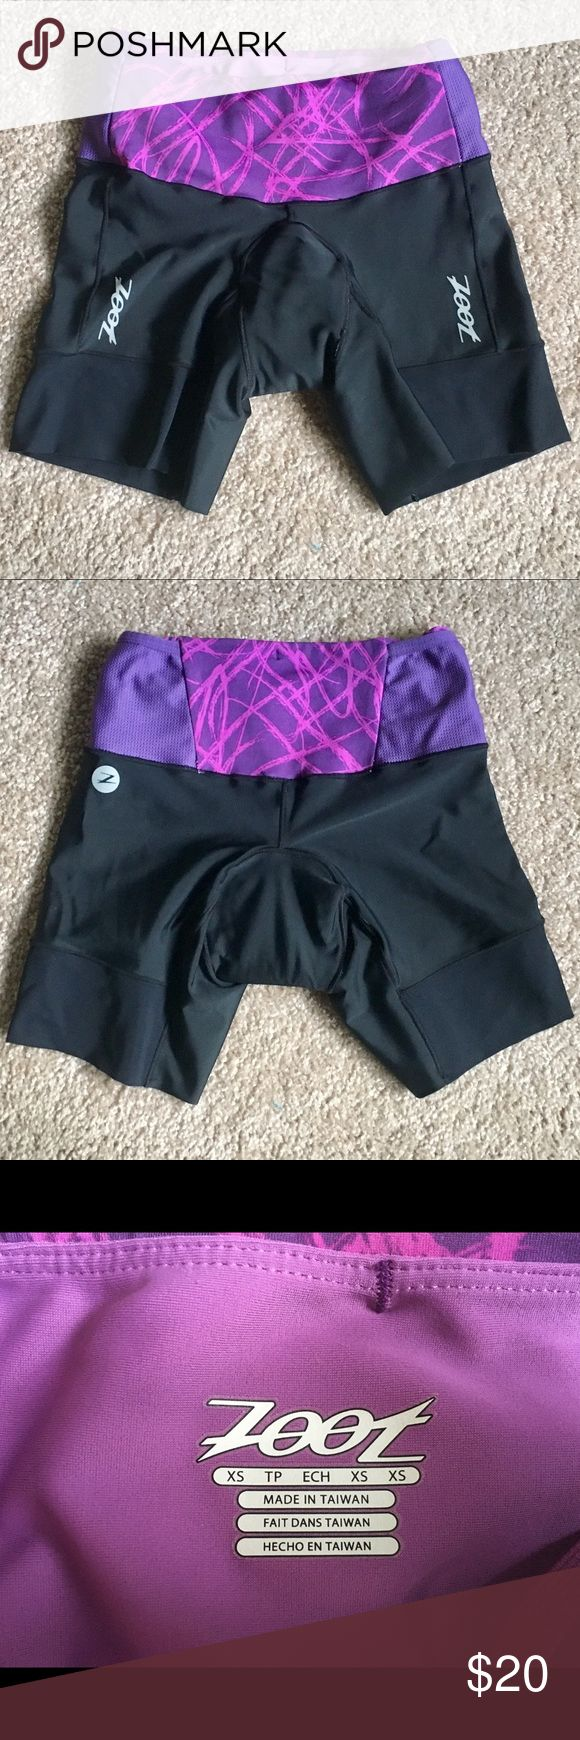 """Black/Purple Zoot Active Tri Shorts XS Zoot Active Tri Shorts, size XS. Triathlon Shorts with thin chamois pad that is quick drying after swimming. Black shorts with purple waistband. Waistband has internal drawstring. 6"""" inseam. I am 5'3"""" and ~105lb for reference. These run small, they are tight on me, but not uncomfortably so. I do prefer the size S though. Only worn a handful of times, still in great condition! See my triathlon top for bundling option :) Zoot Shorts"""